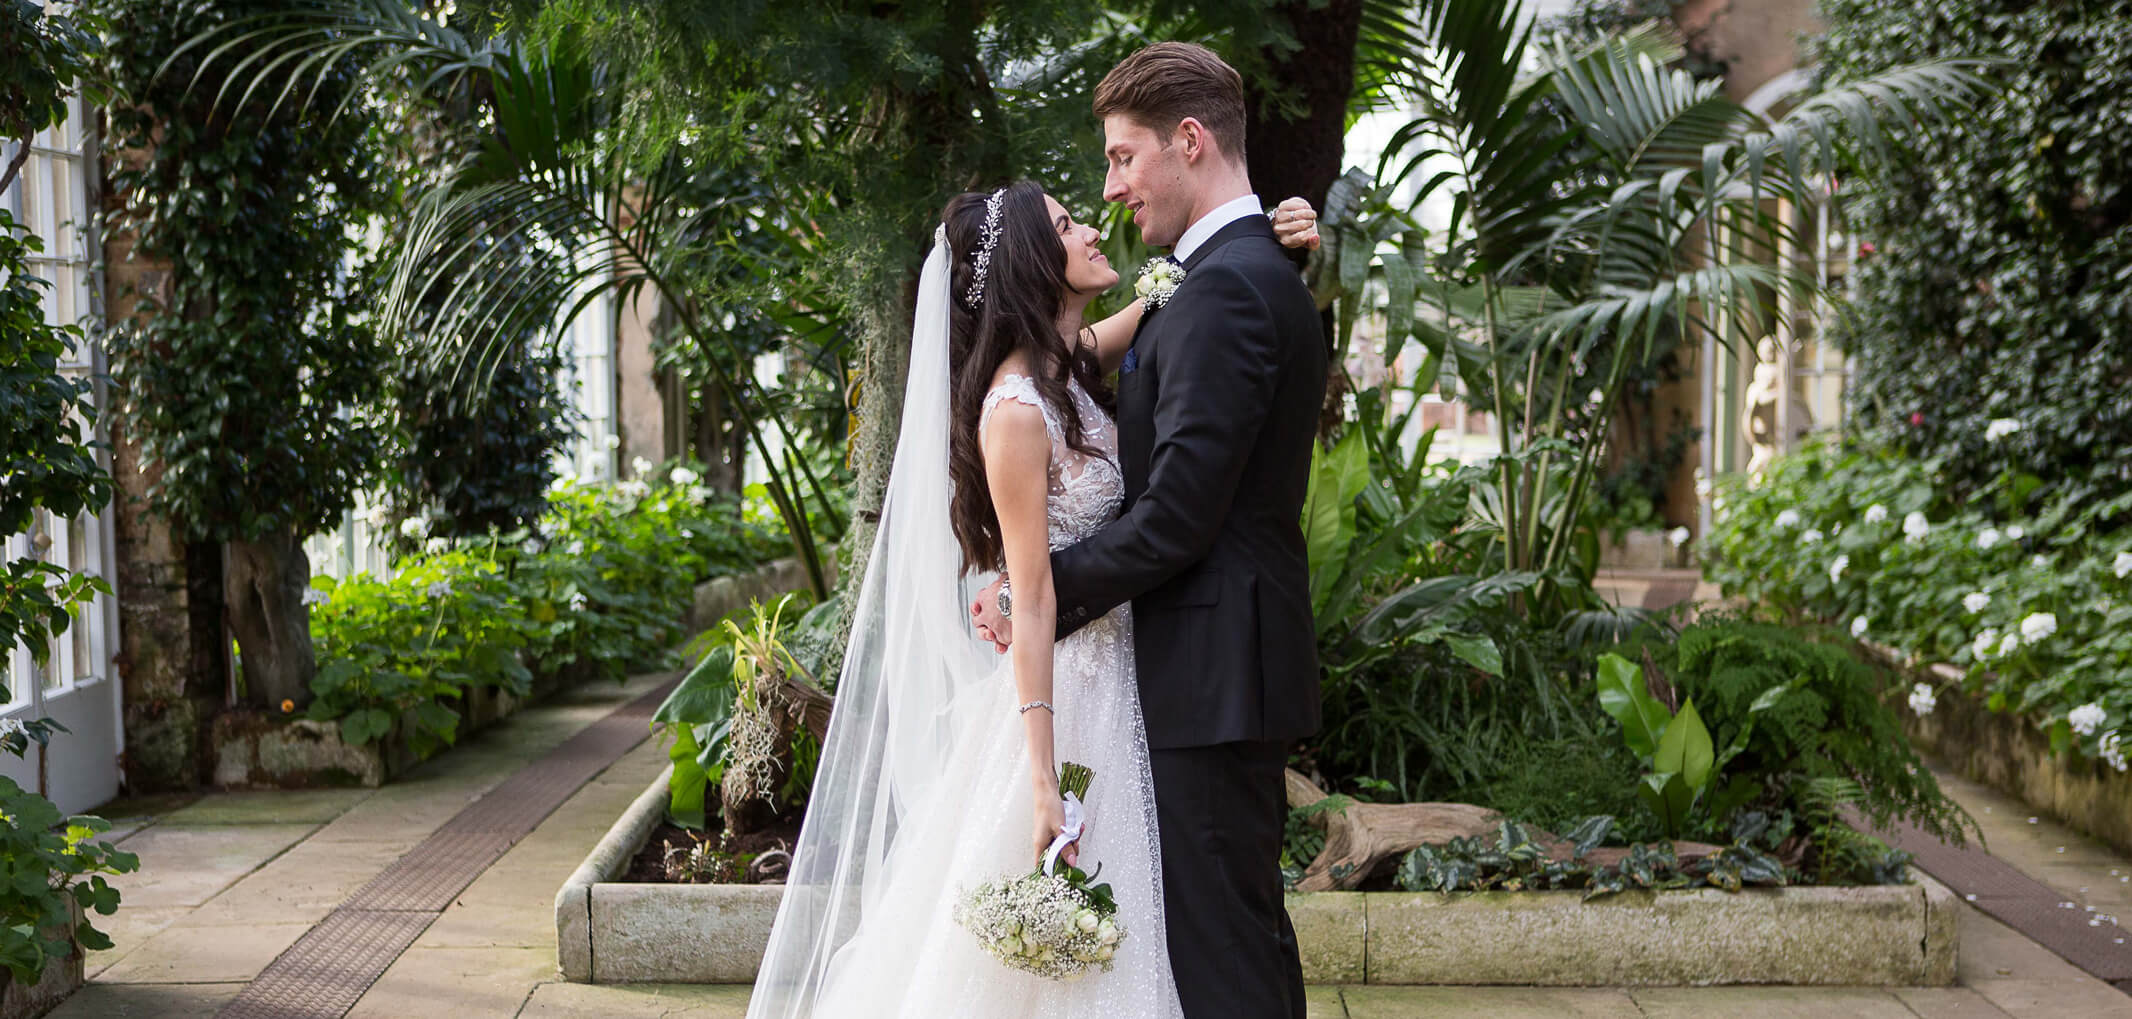 A newly married couple look at each other happily at a Hertfordshire venue